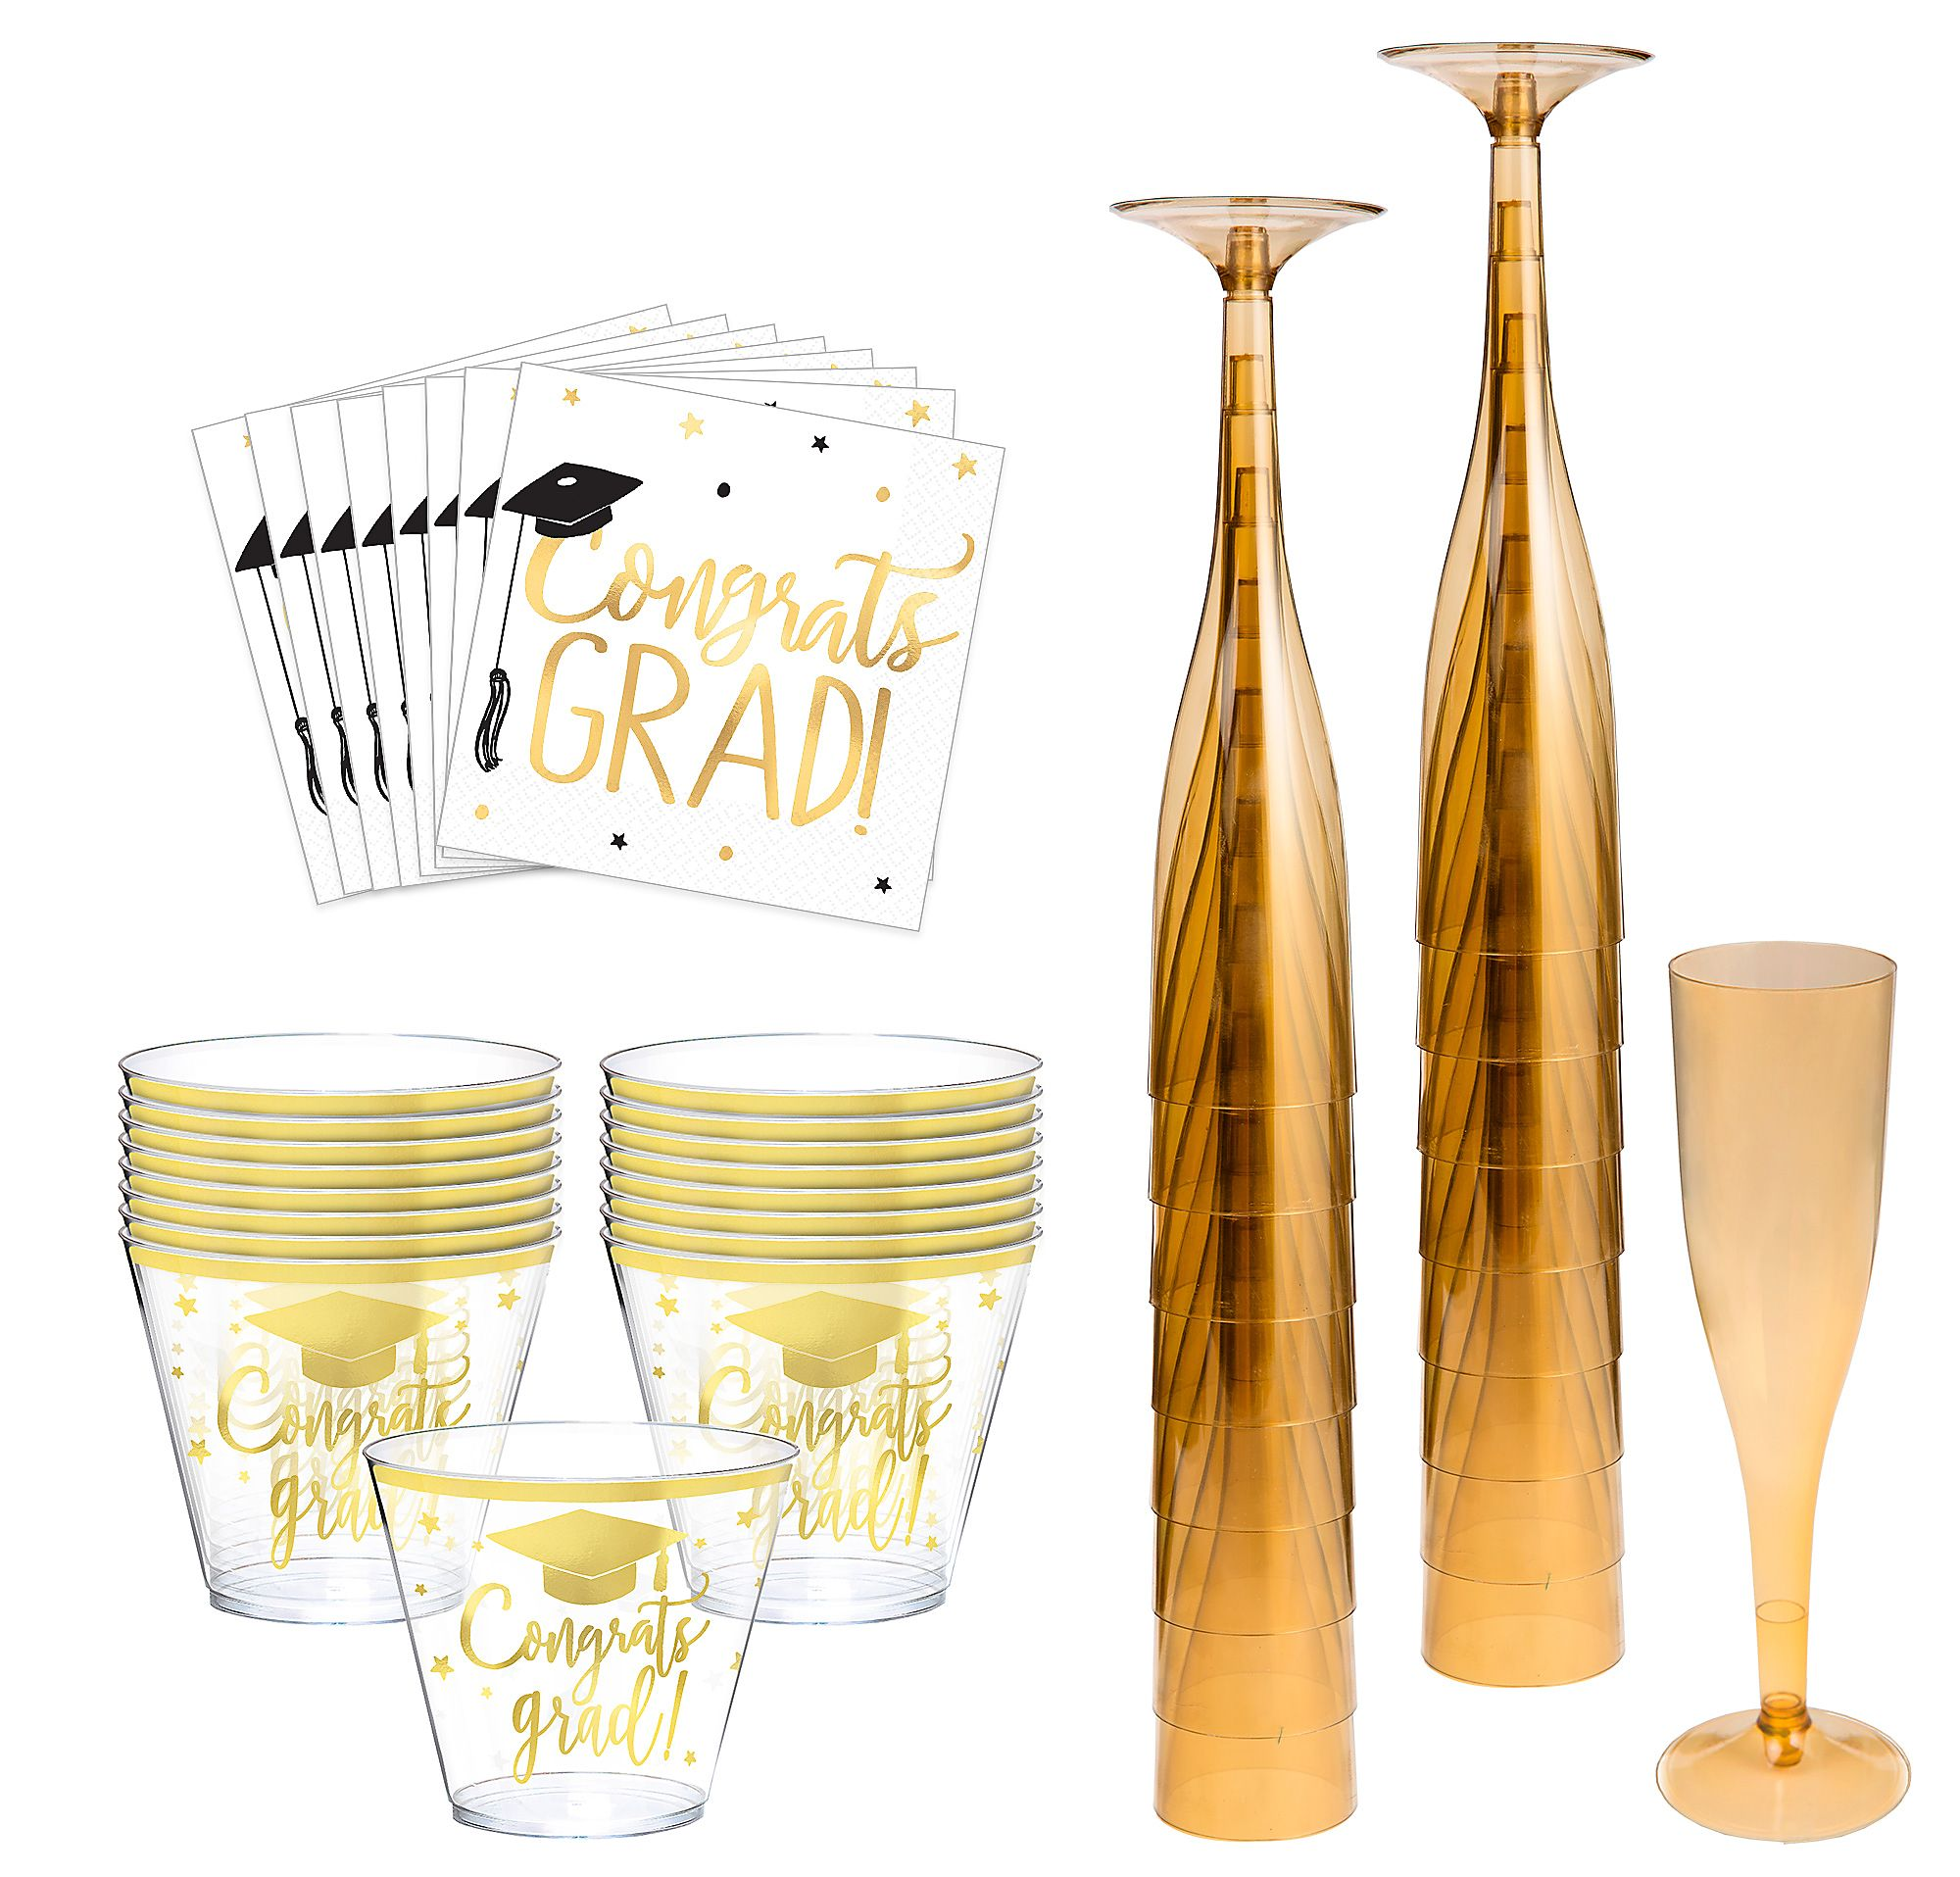 Metallic-Gold-The-Adventure-Begins-Graduation-Cocktail-Party-Kit-for-16-Guests